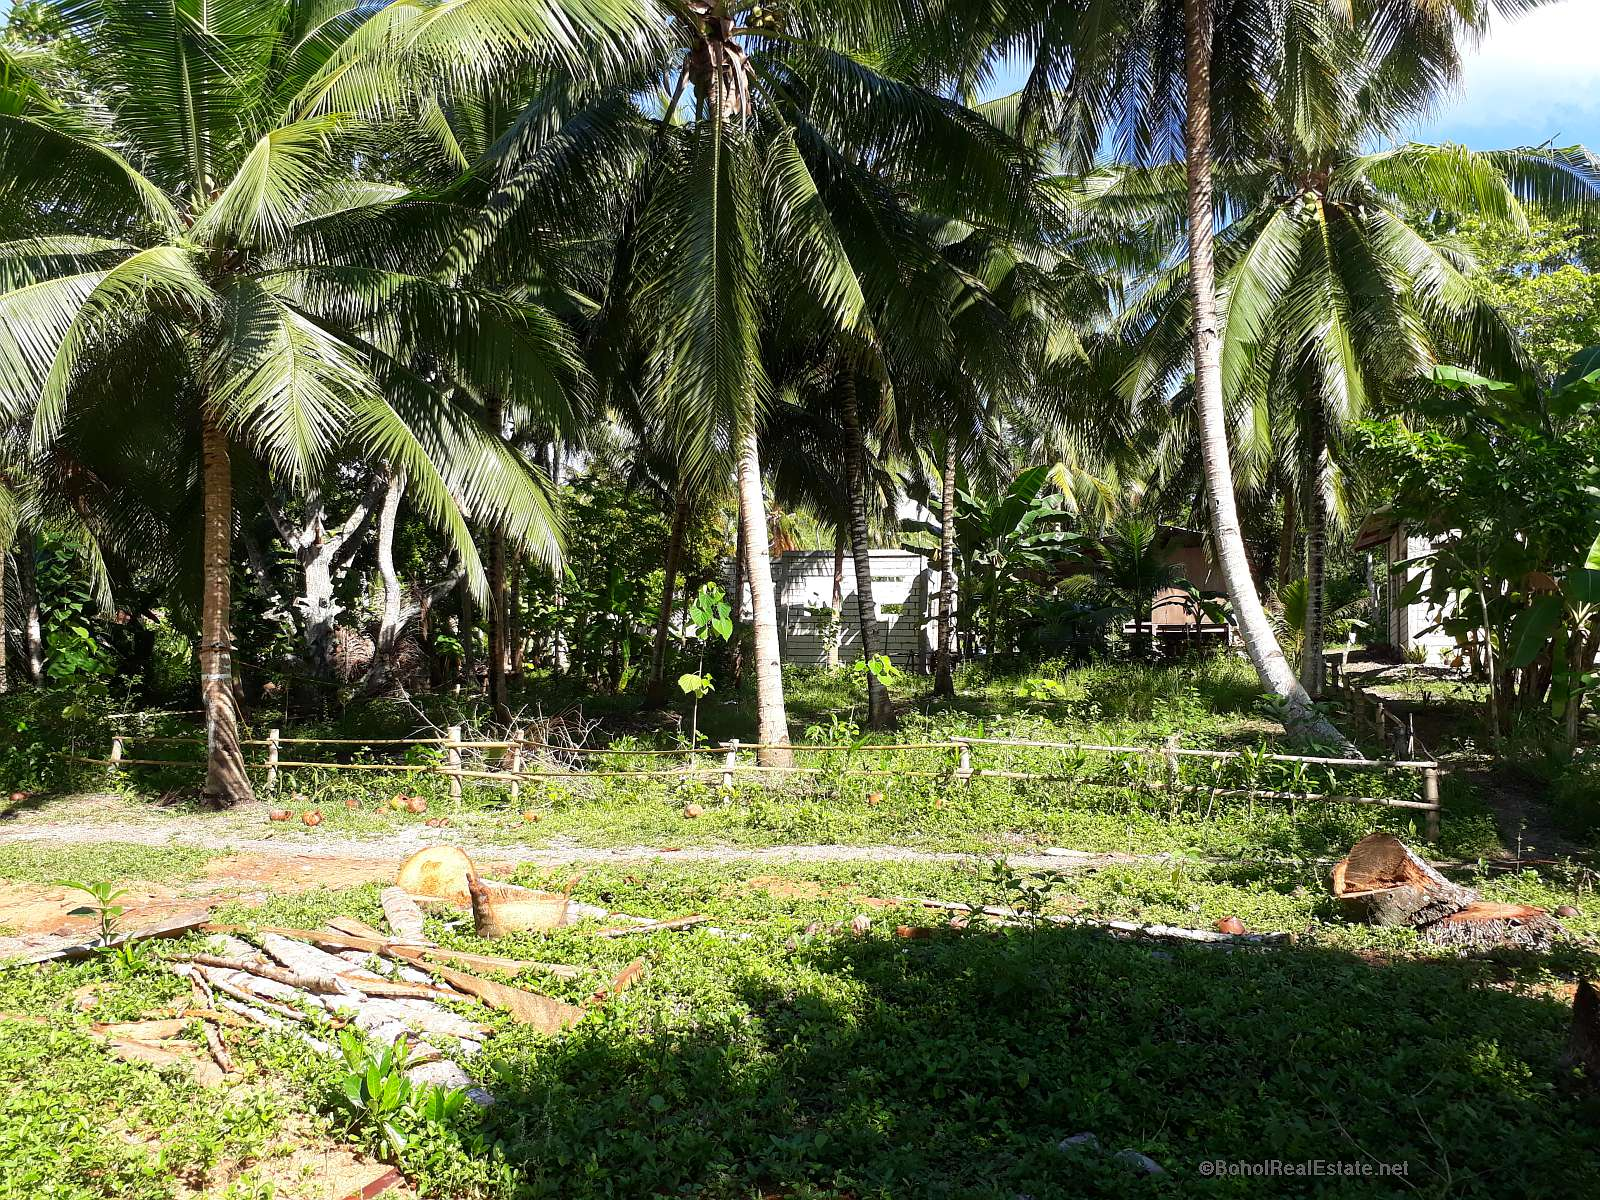 lot for sale Panglao Bohol Philippines - 040.jpg